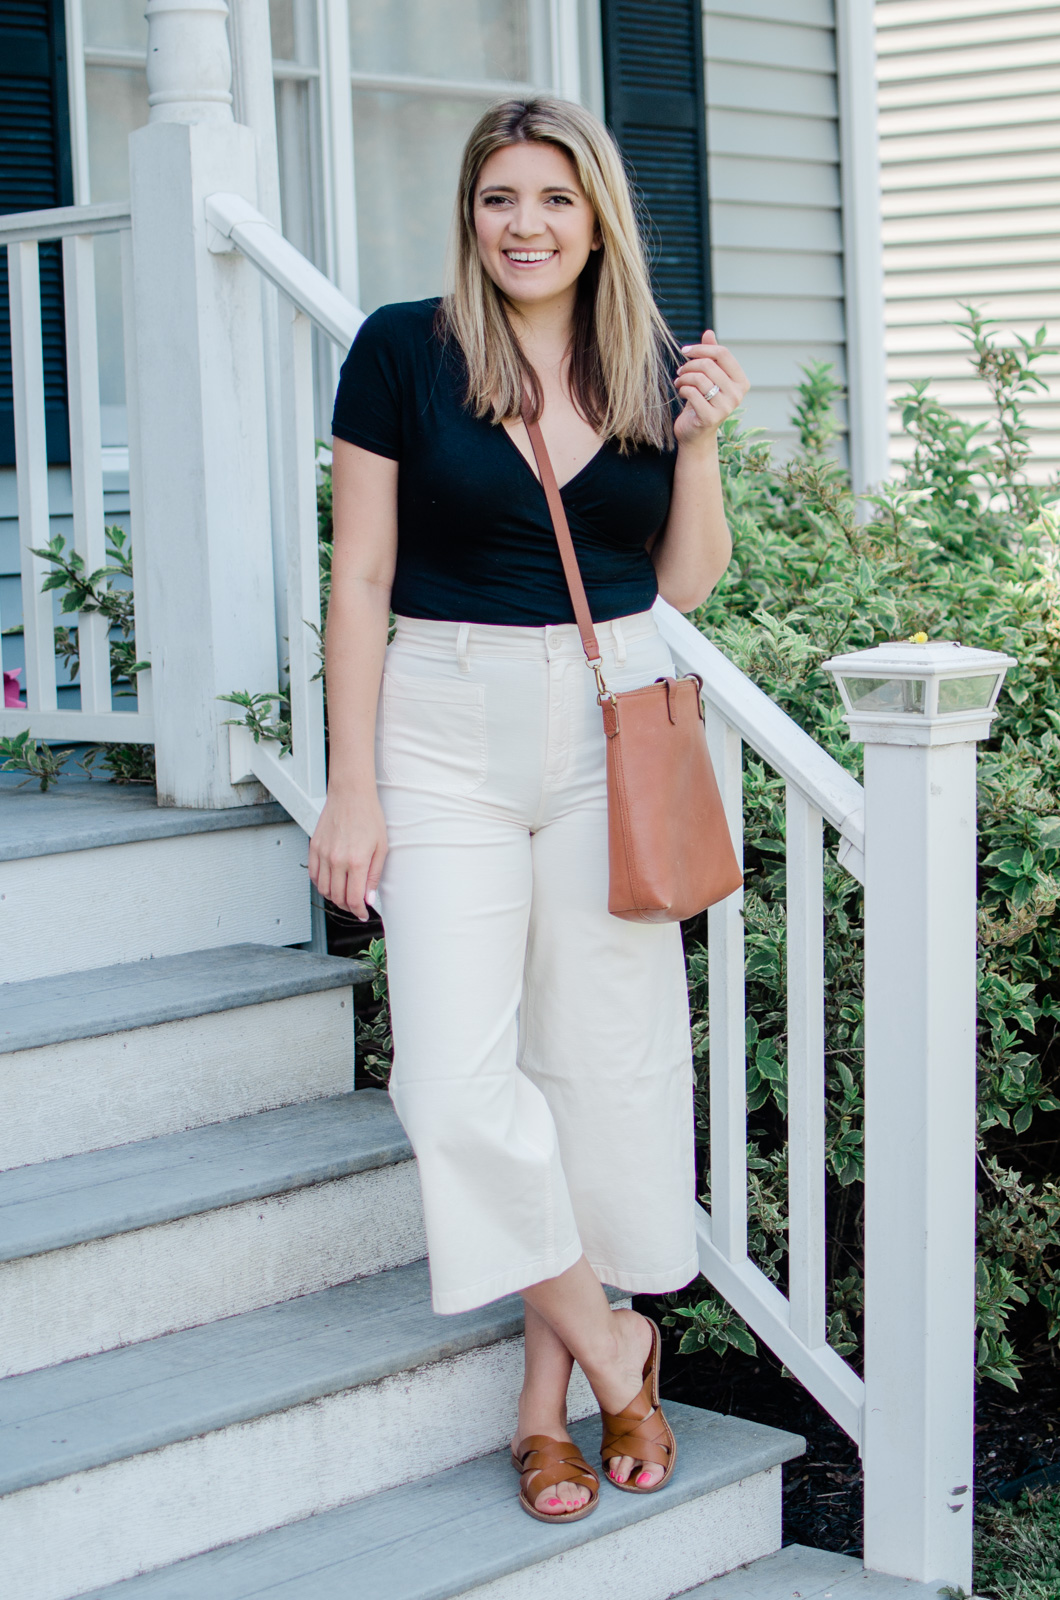 Virginia blogger, Lauren Dix, shares four bodysuit outfits for summer.